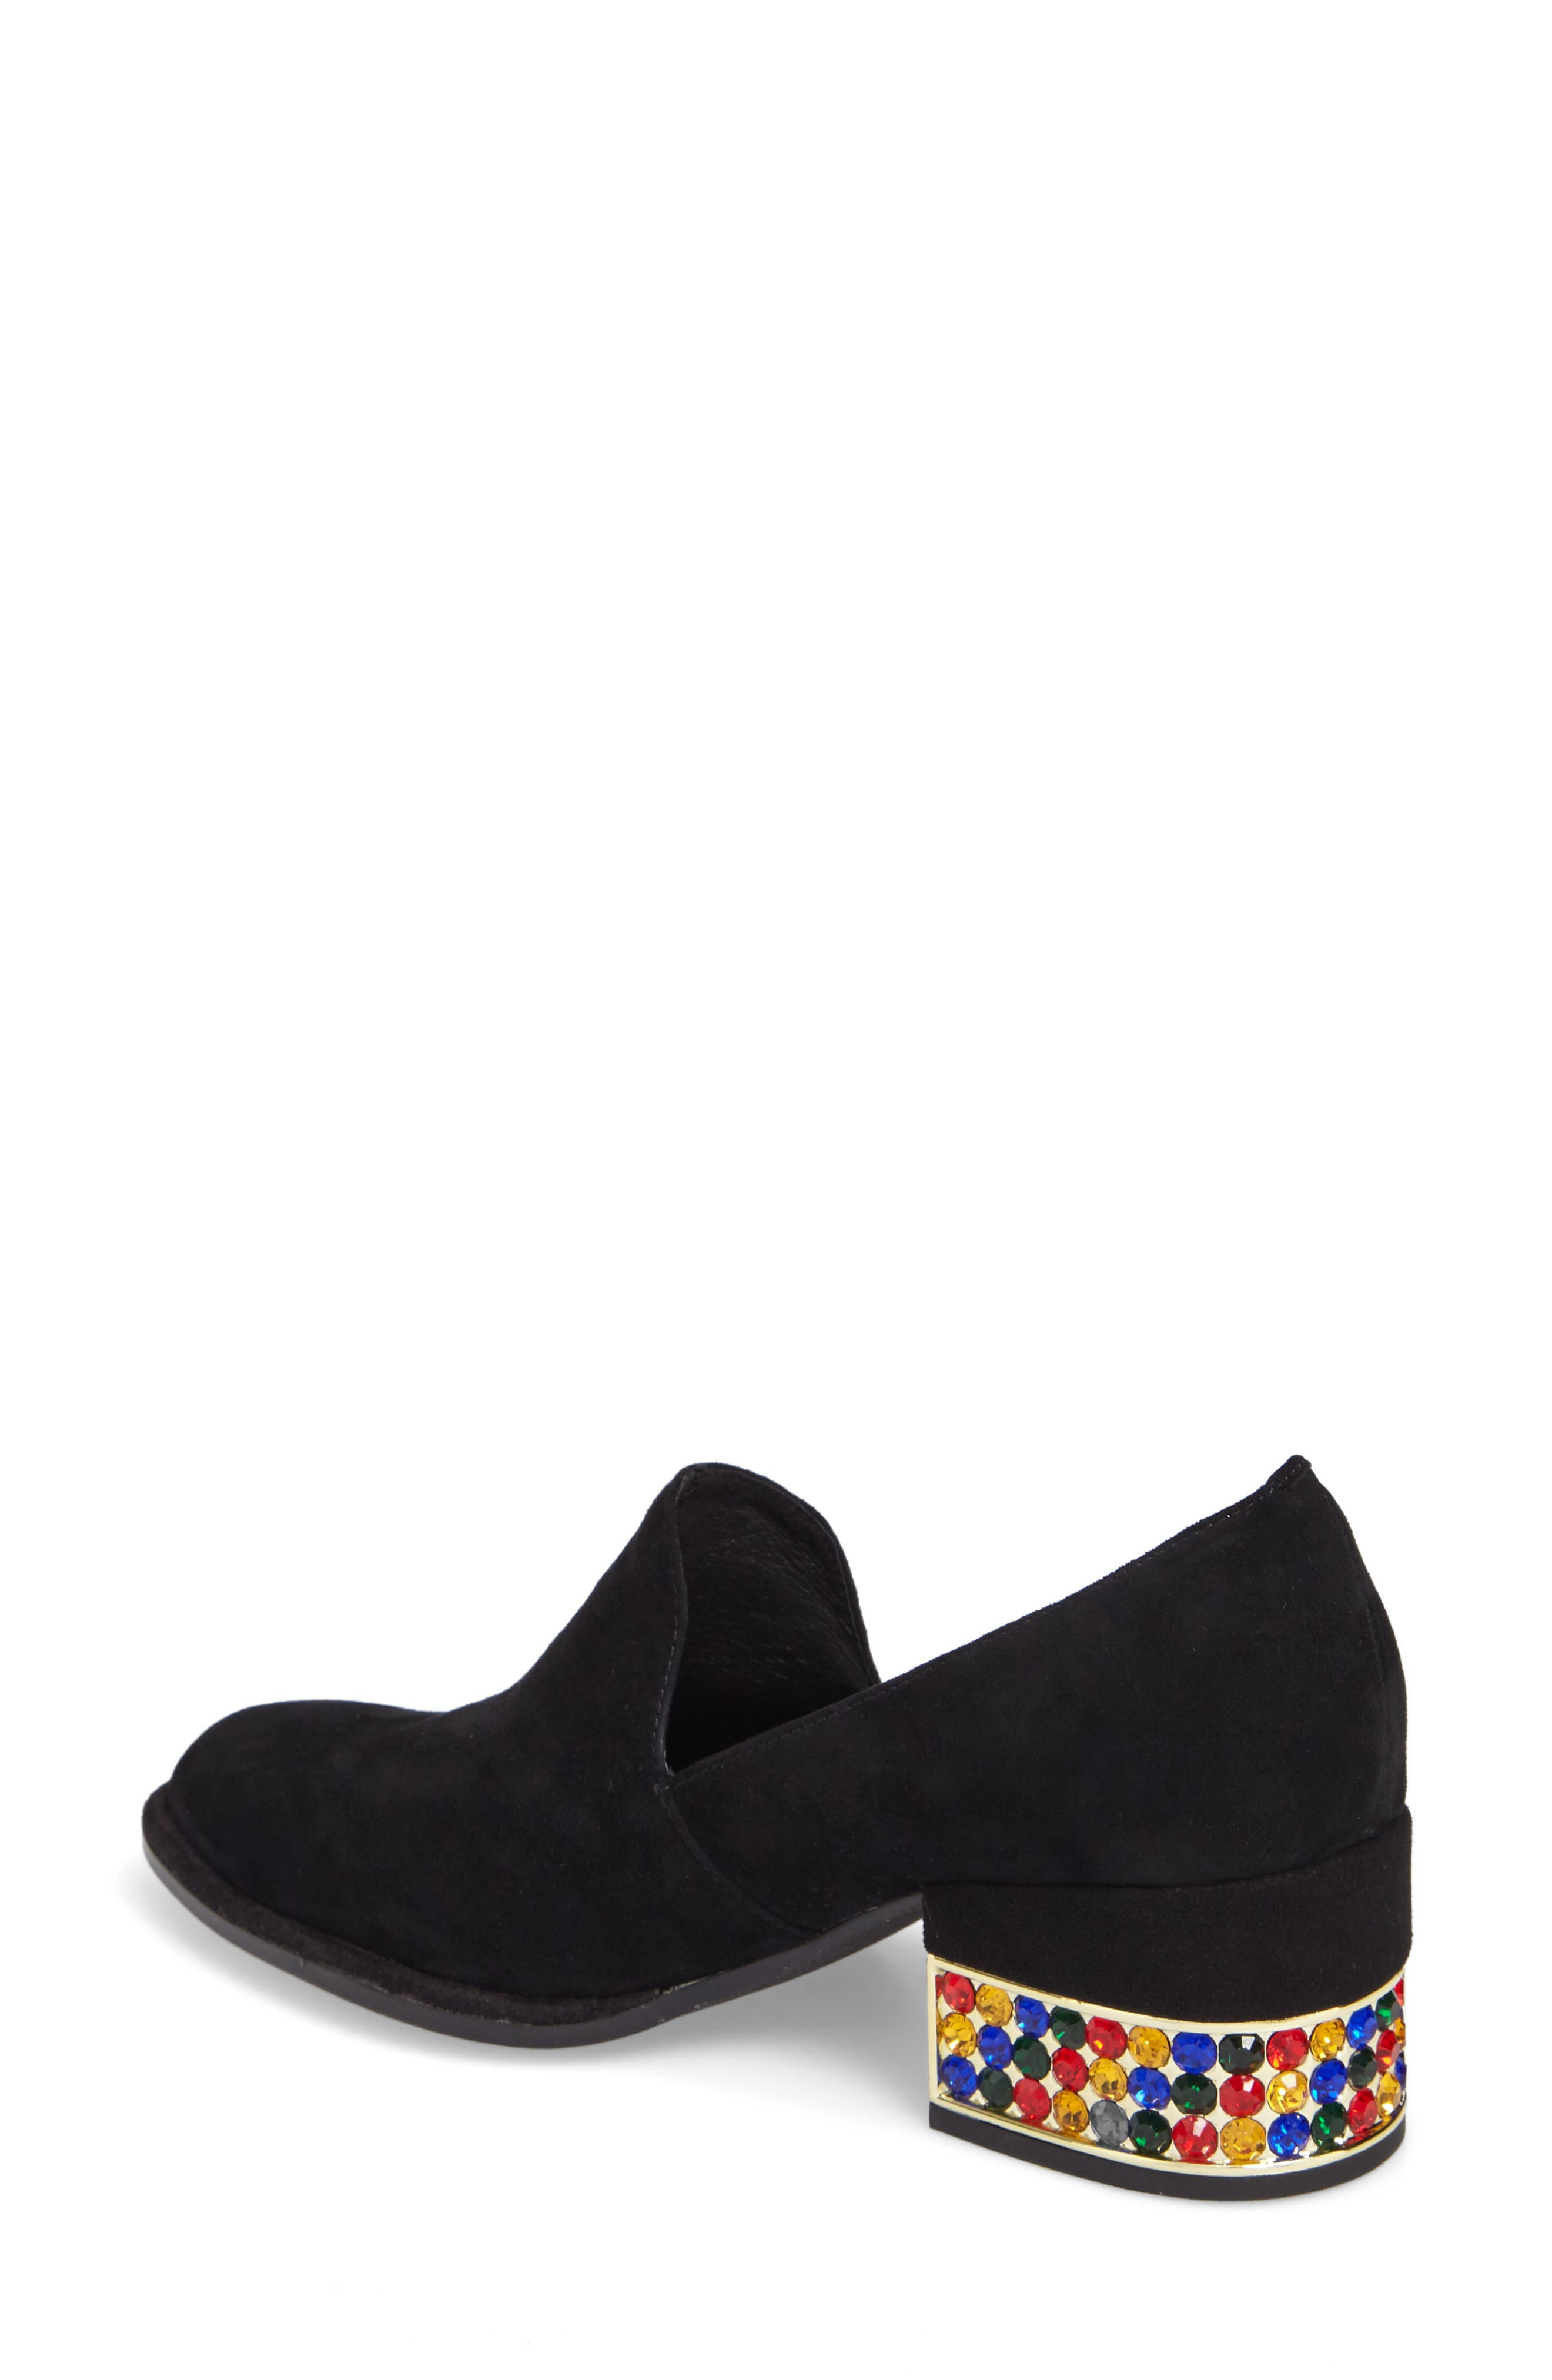 Serlin Jeweled Heel Loafer,                             Alternate thumbnail 2, color,                             Black Suede Bright Combo